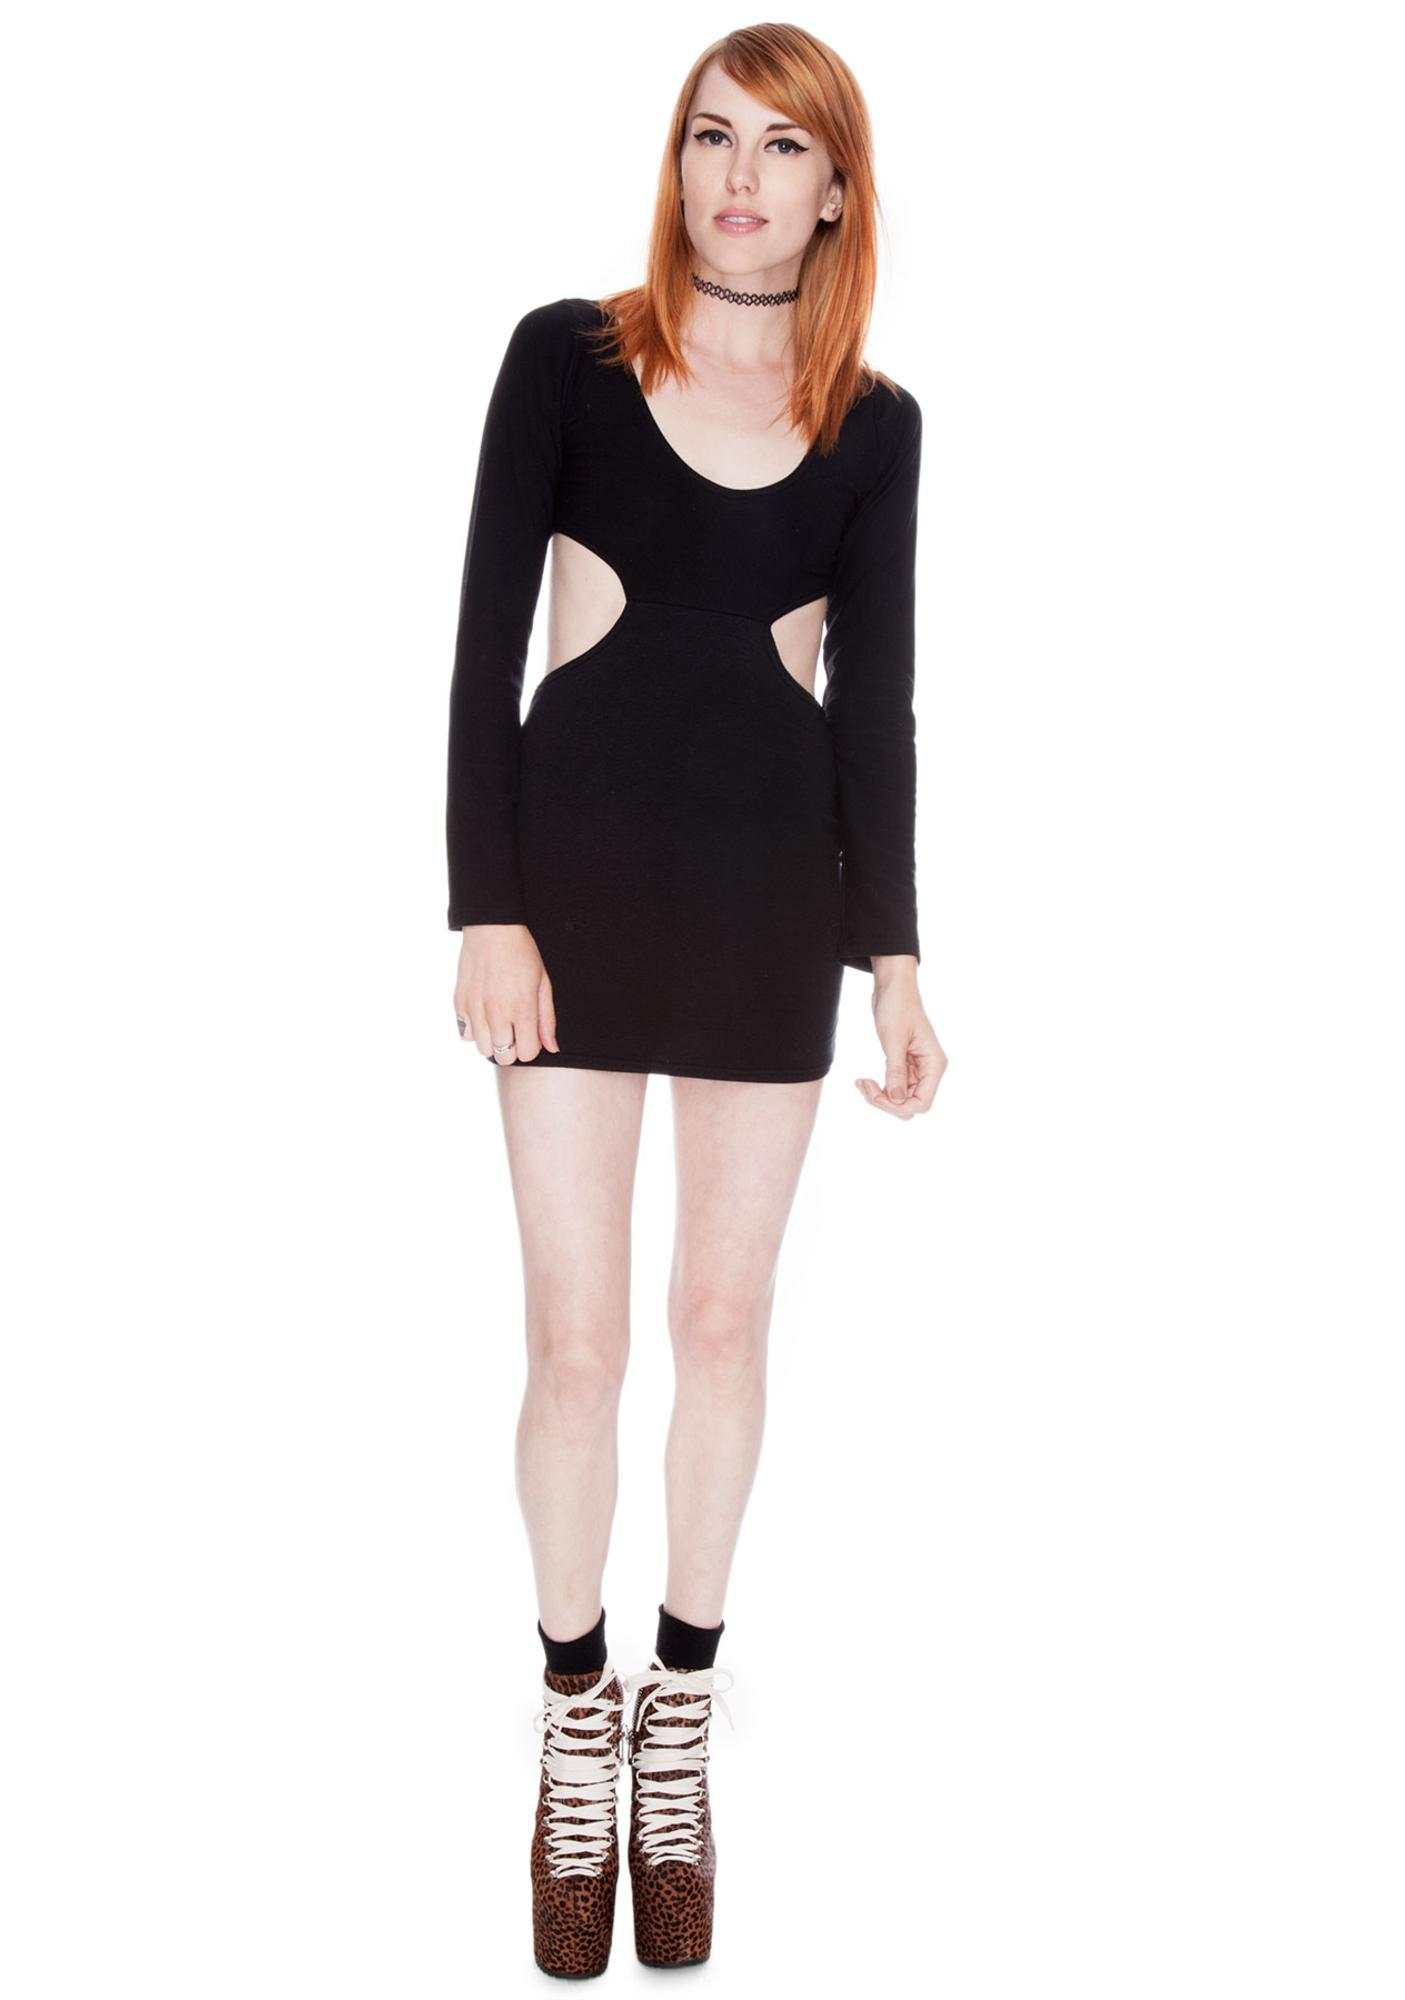 Our Prince of Peace Solid Black Sabbath Dress